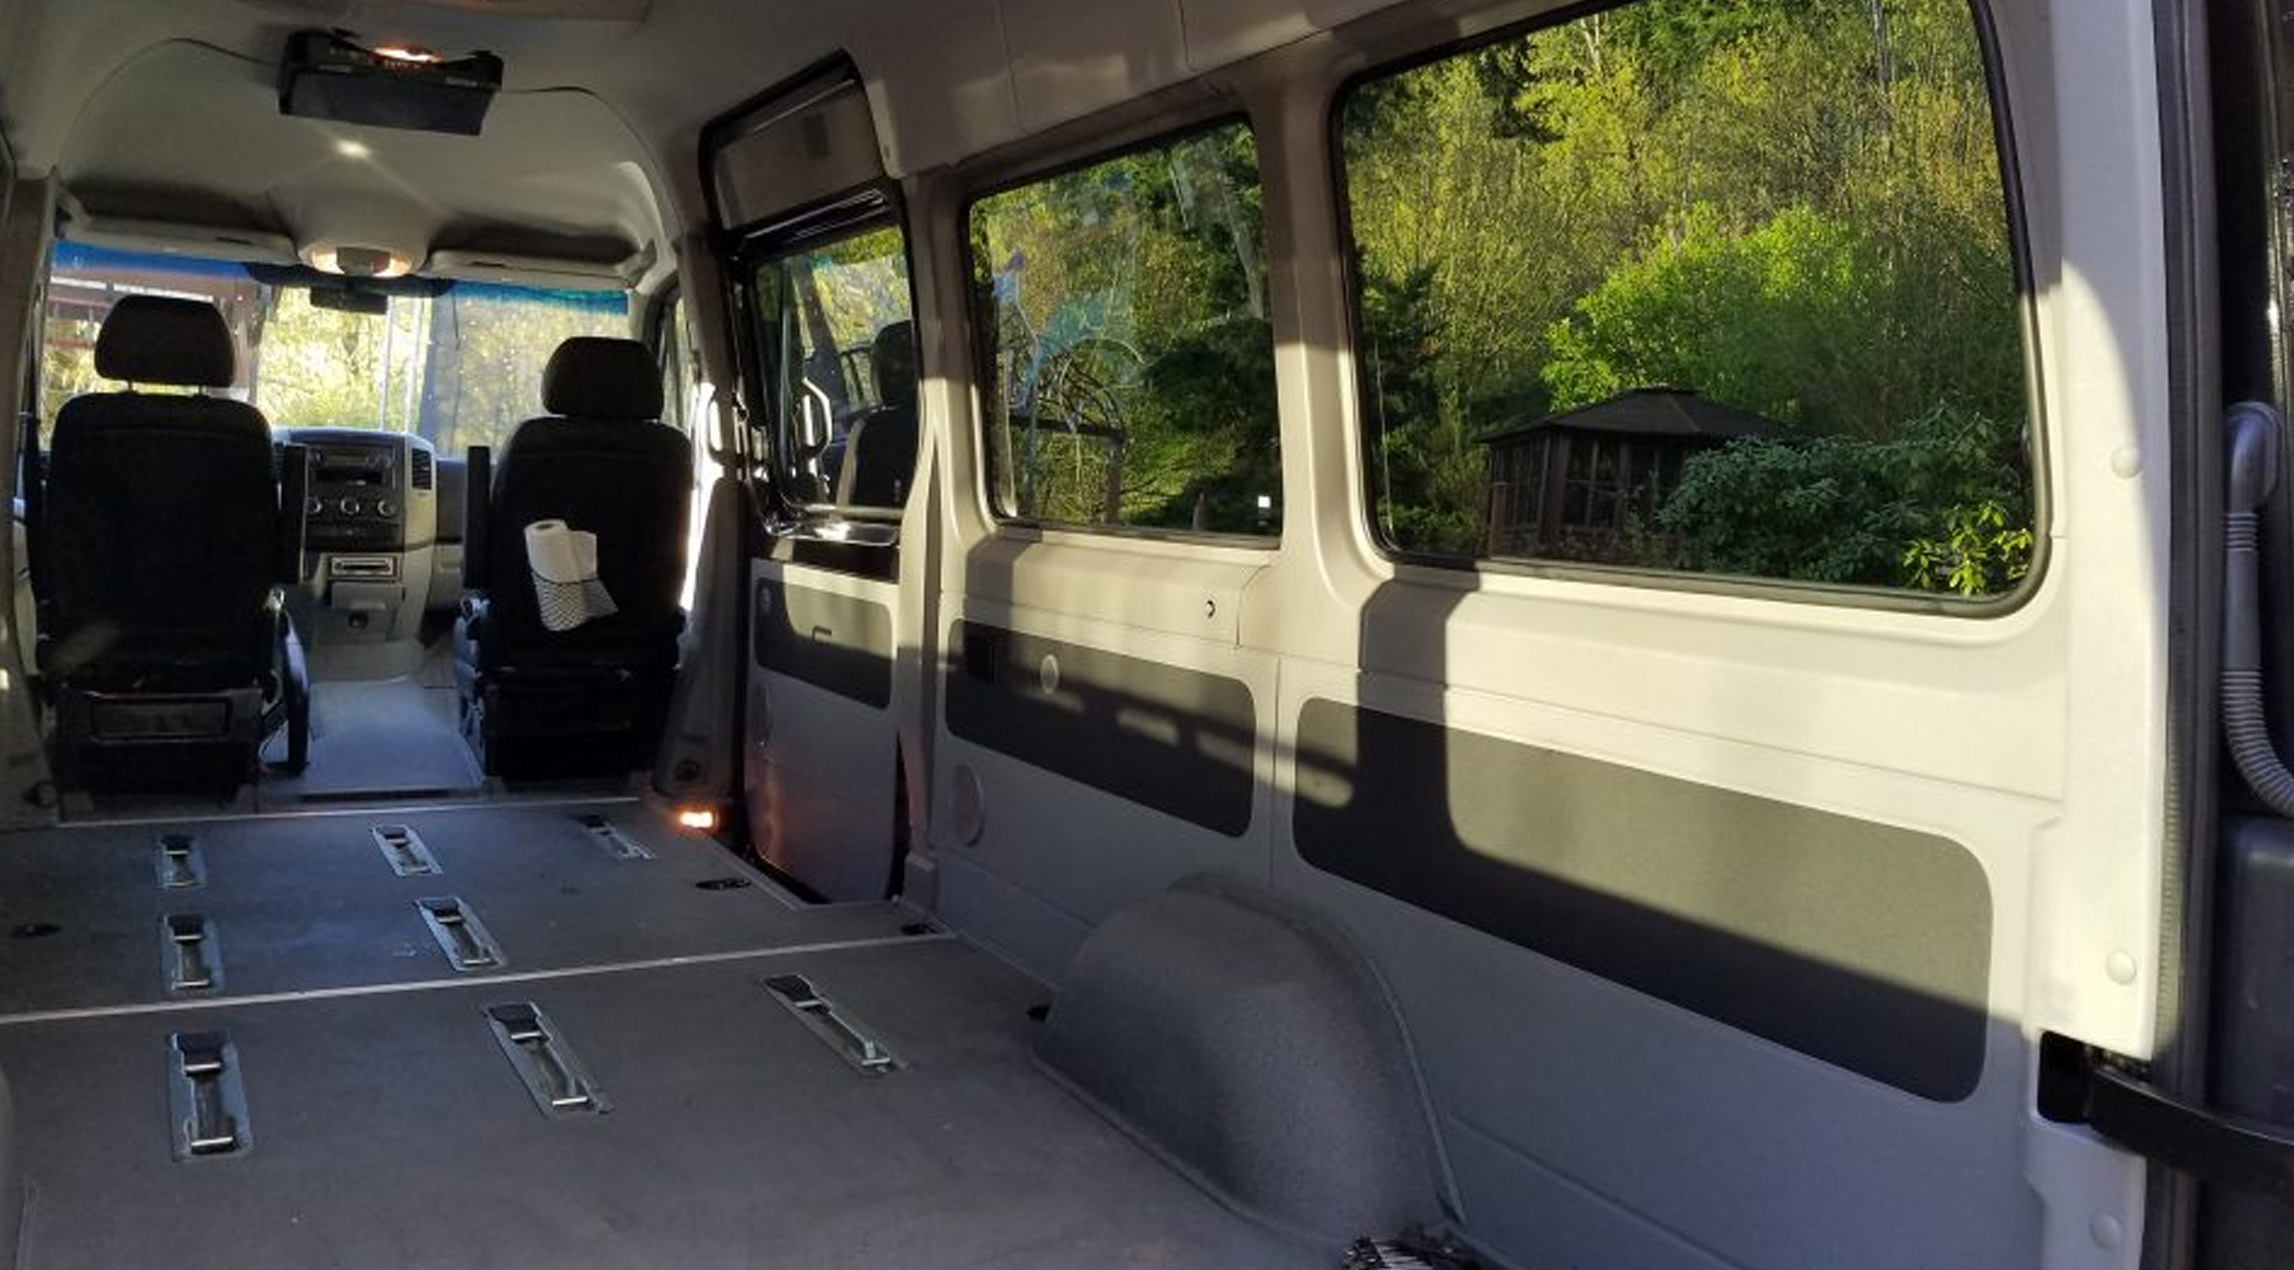 New Mercedes Sprinter Van for conversion